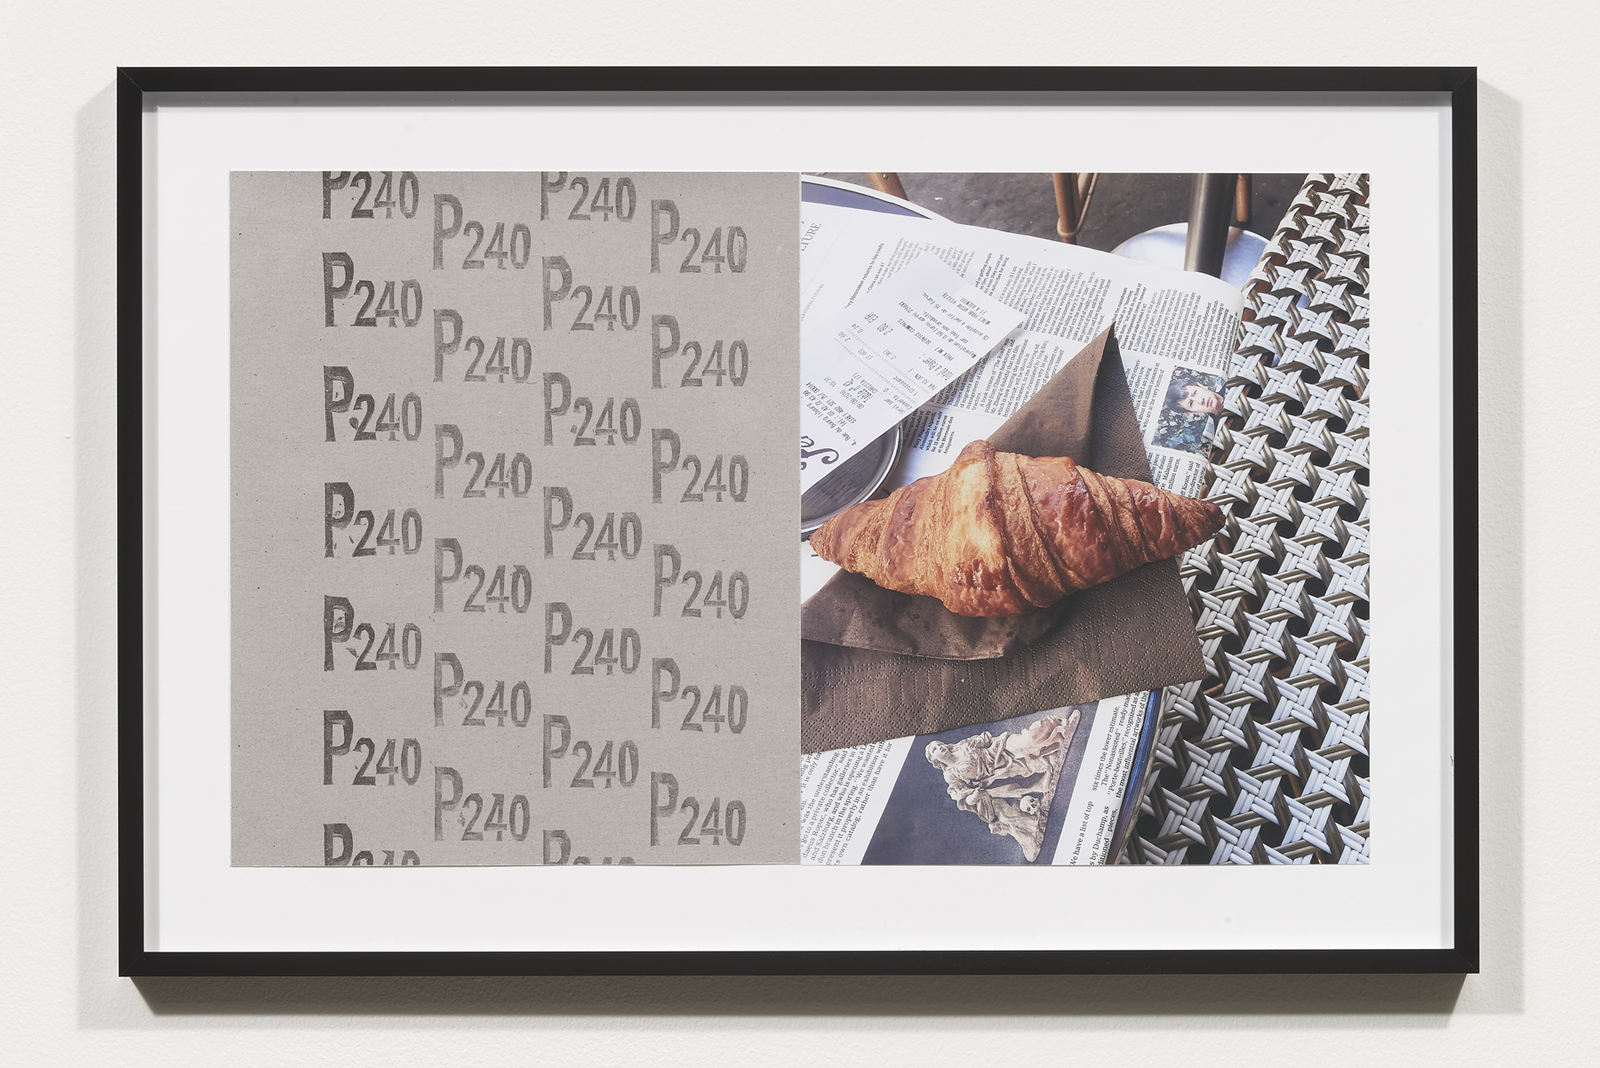 Wermers_Croissants & Architecture #22, 2016_C-print, sandpaper sheet, framed_14 3_8 x 21 1_2 in_NW00063PG